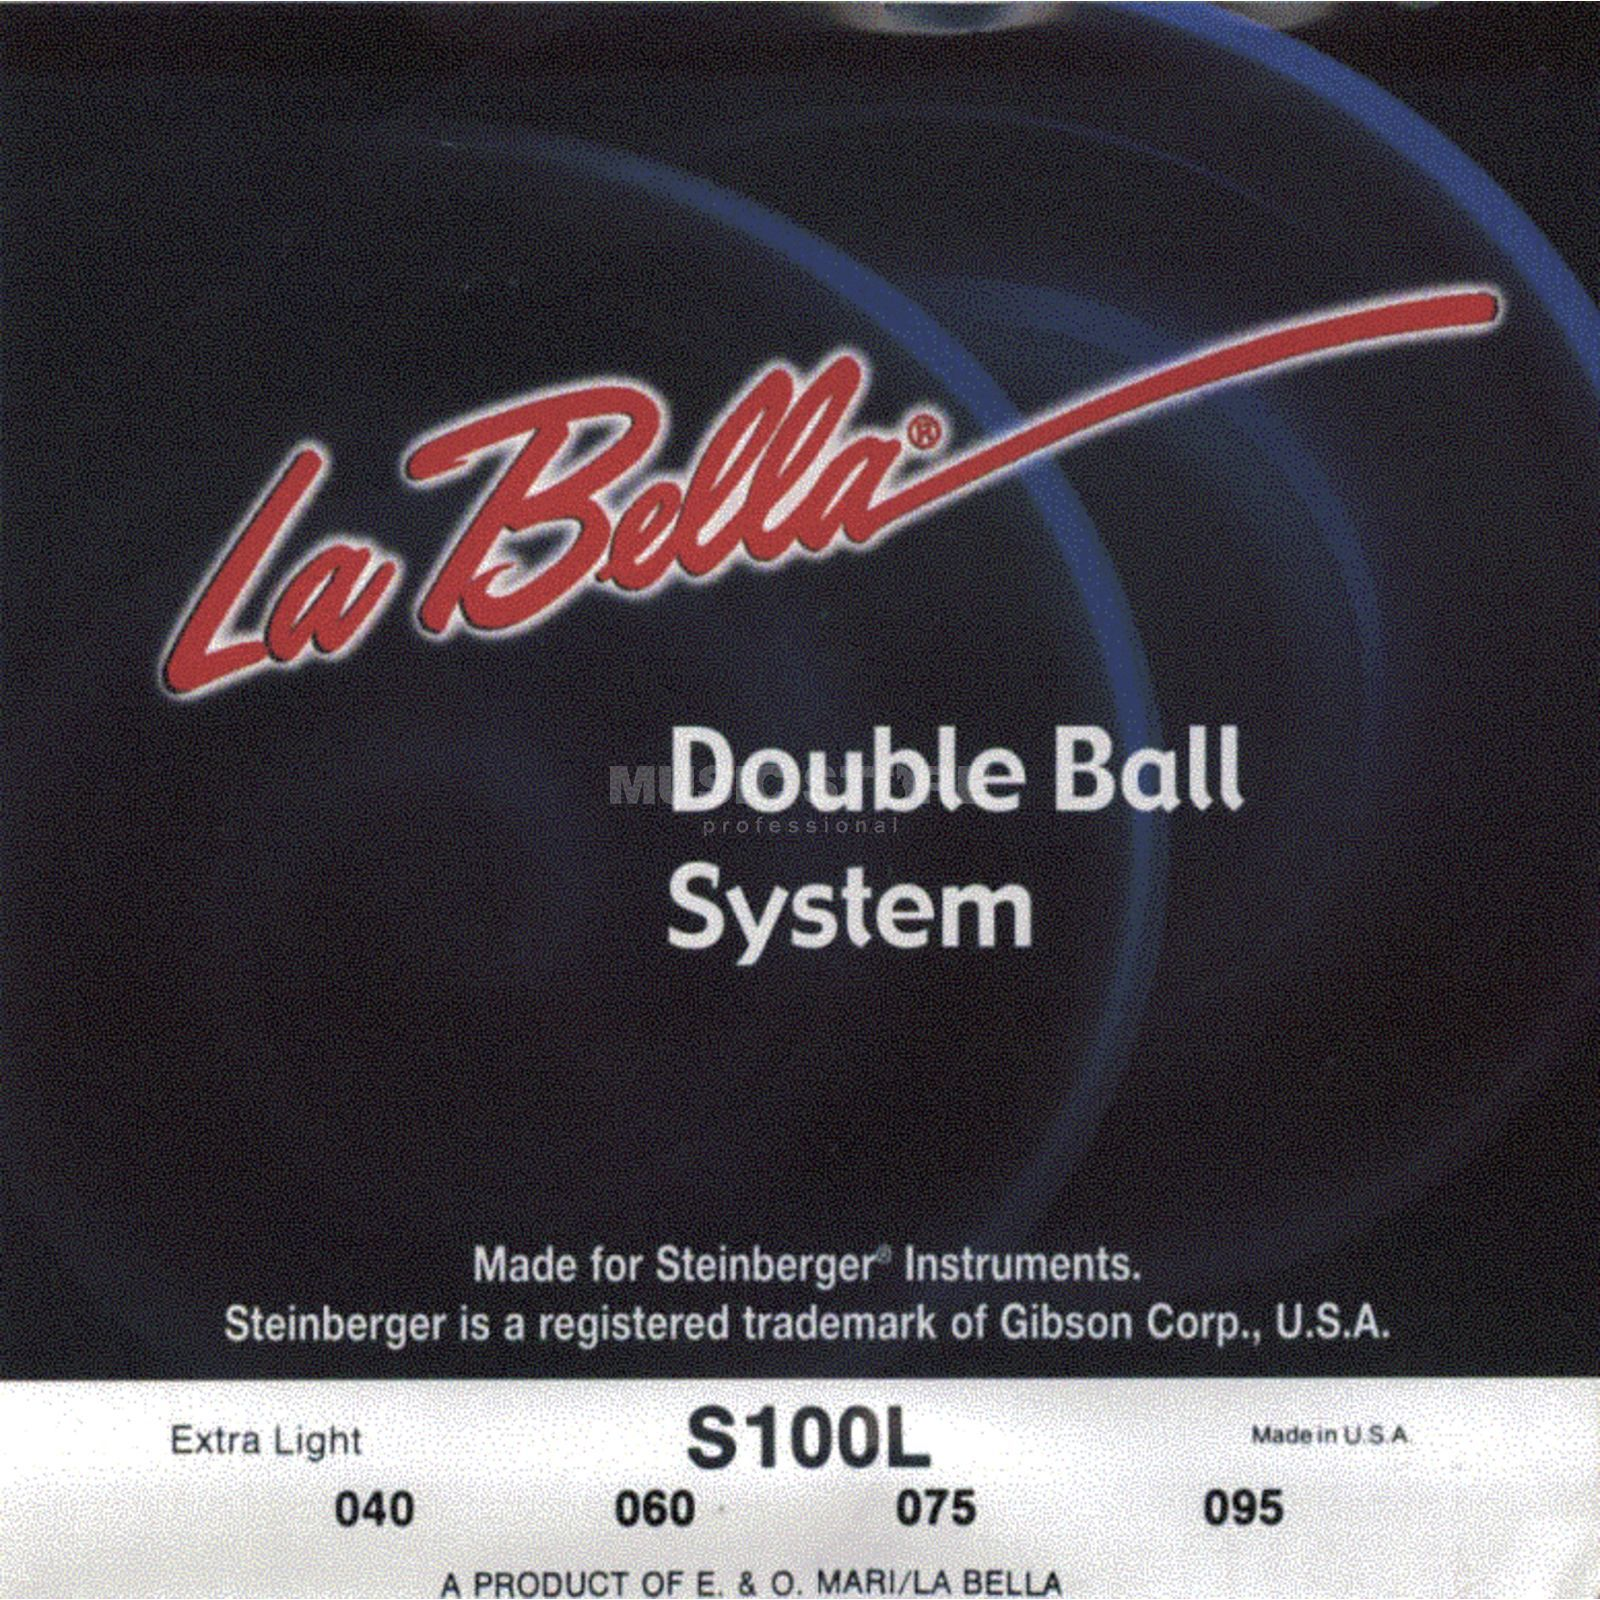 La Bella Bass Strings, 40-95, DoubleB. 4 String Set, S 100 L Product Image